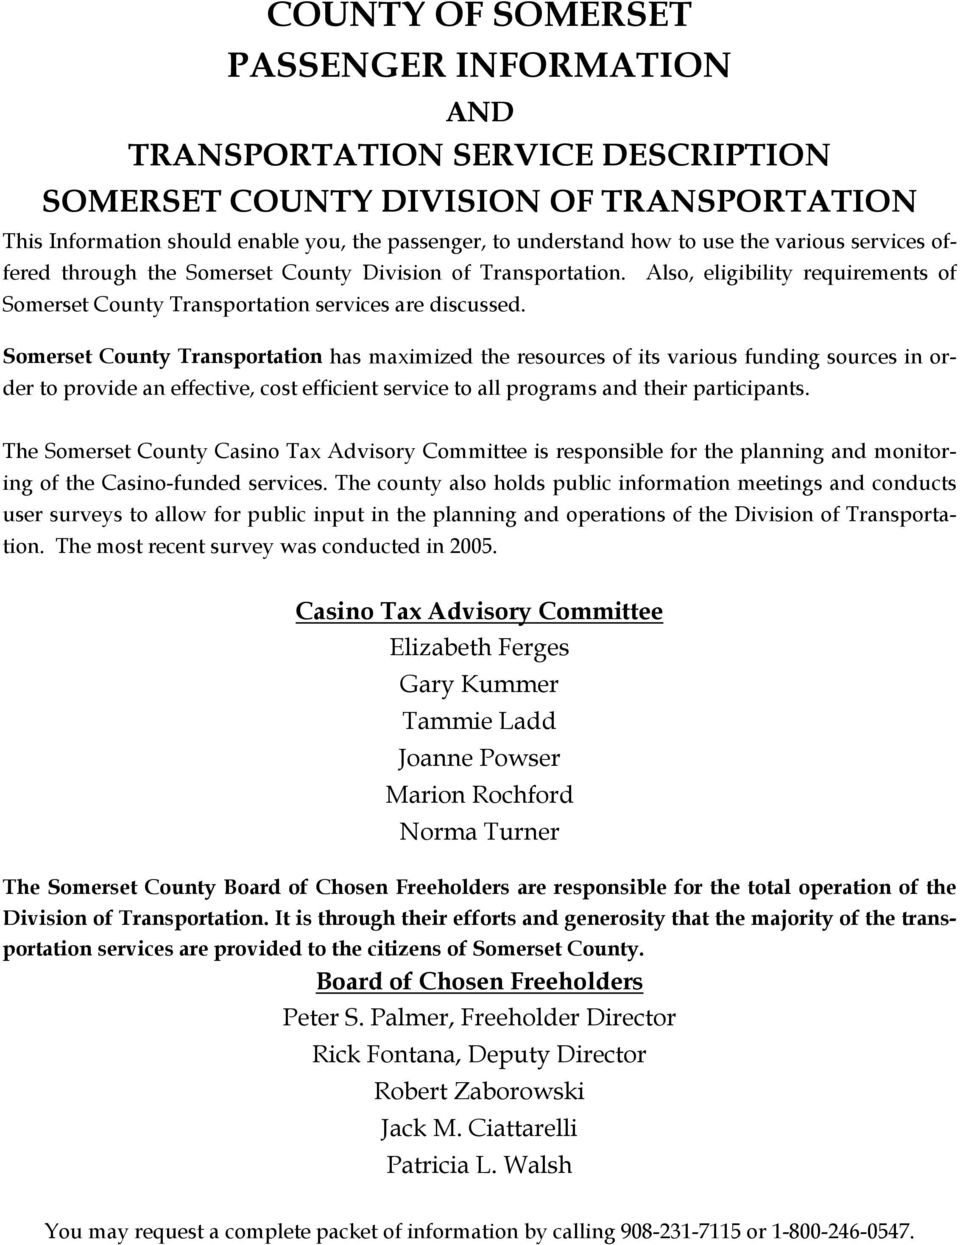 Somerset County Transportation has maximized the resources of its various funding sources in order to provide an effective, cost efficient service to all programs and their participants.